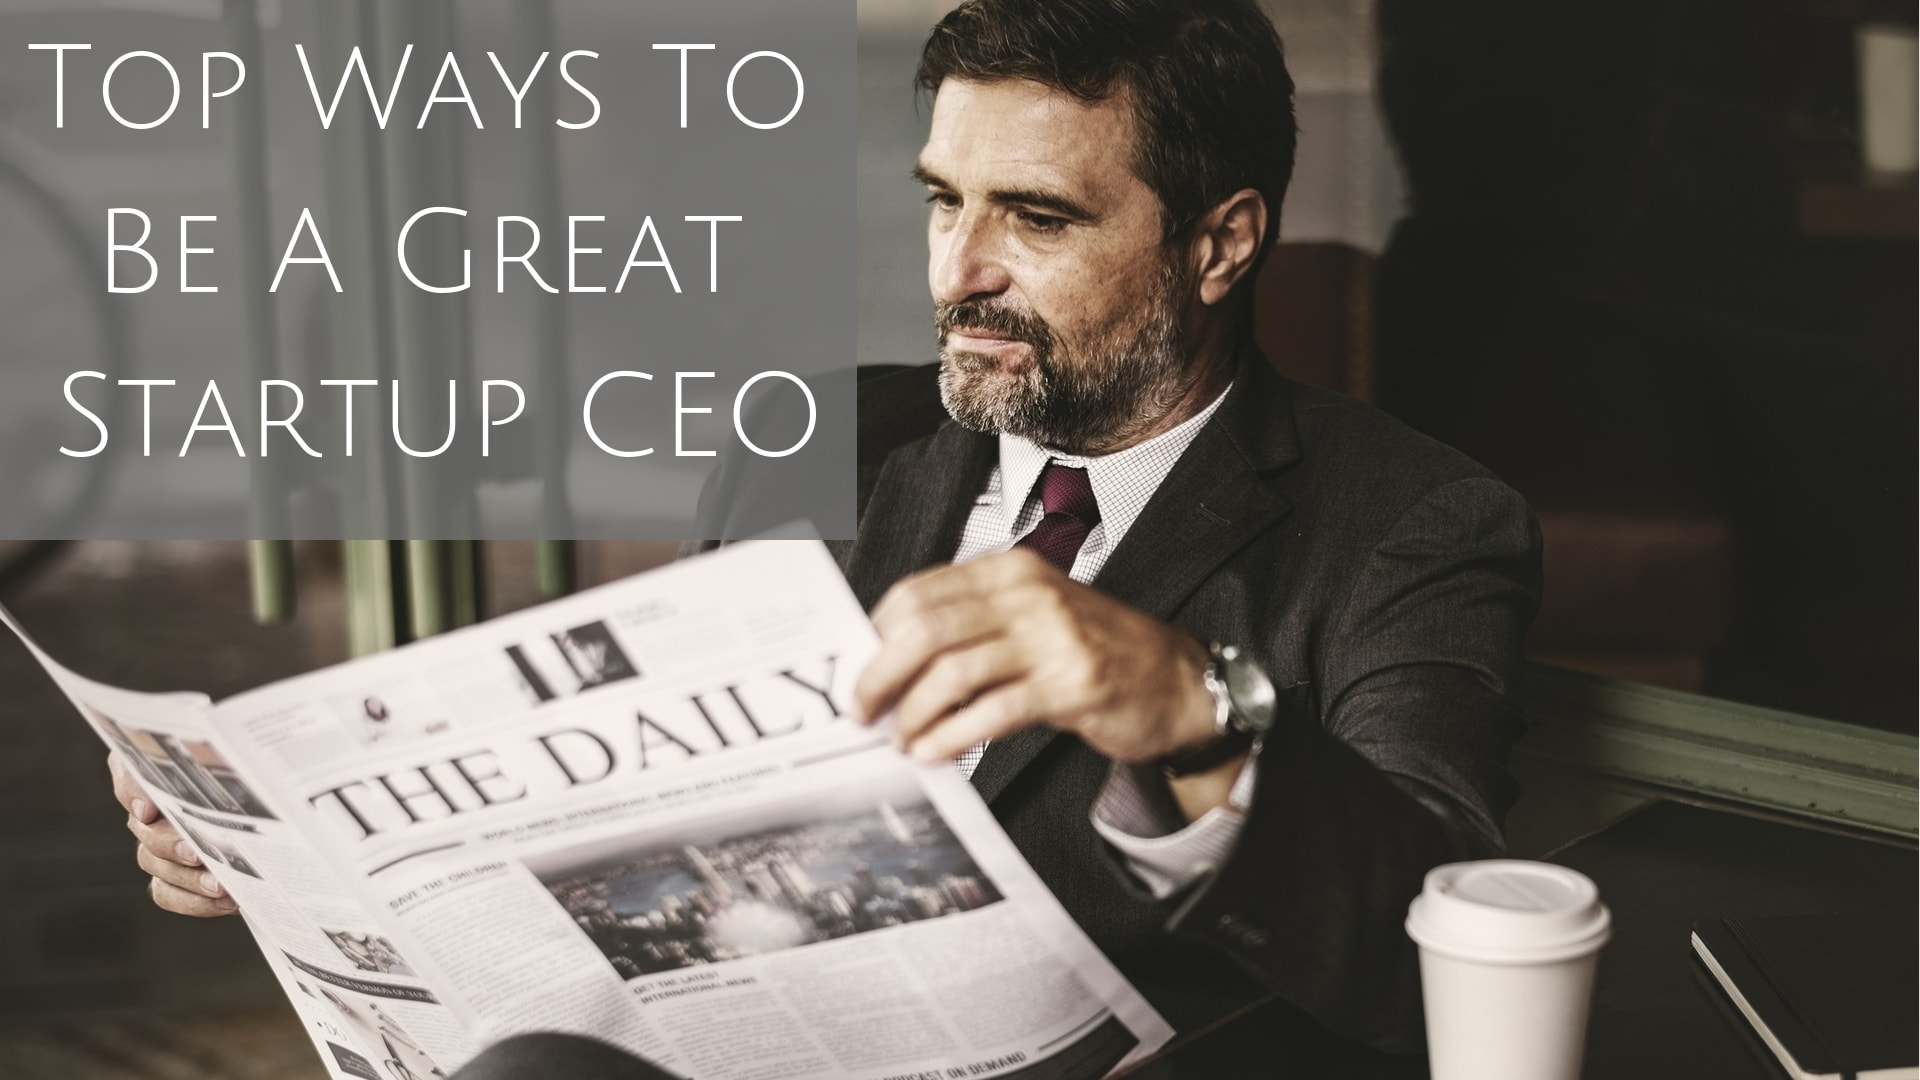 Top Ways To Be A Great Startup CEO